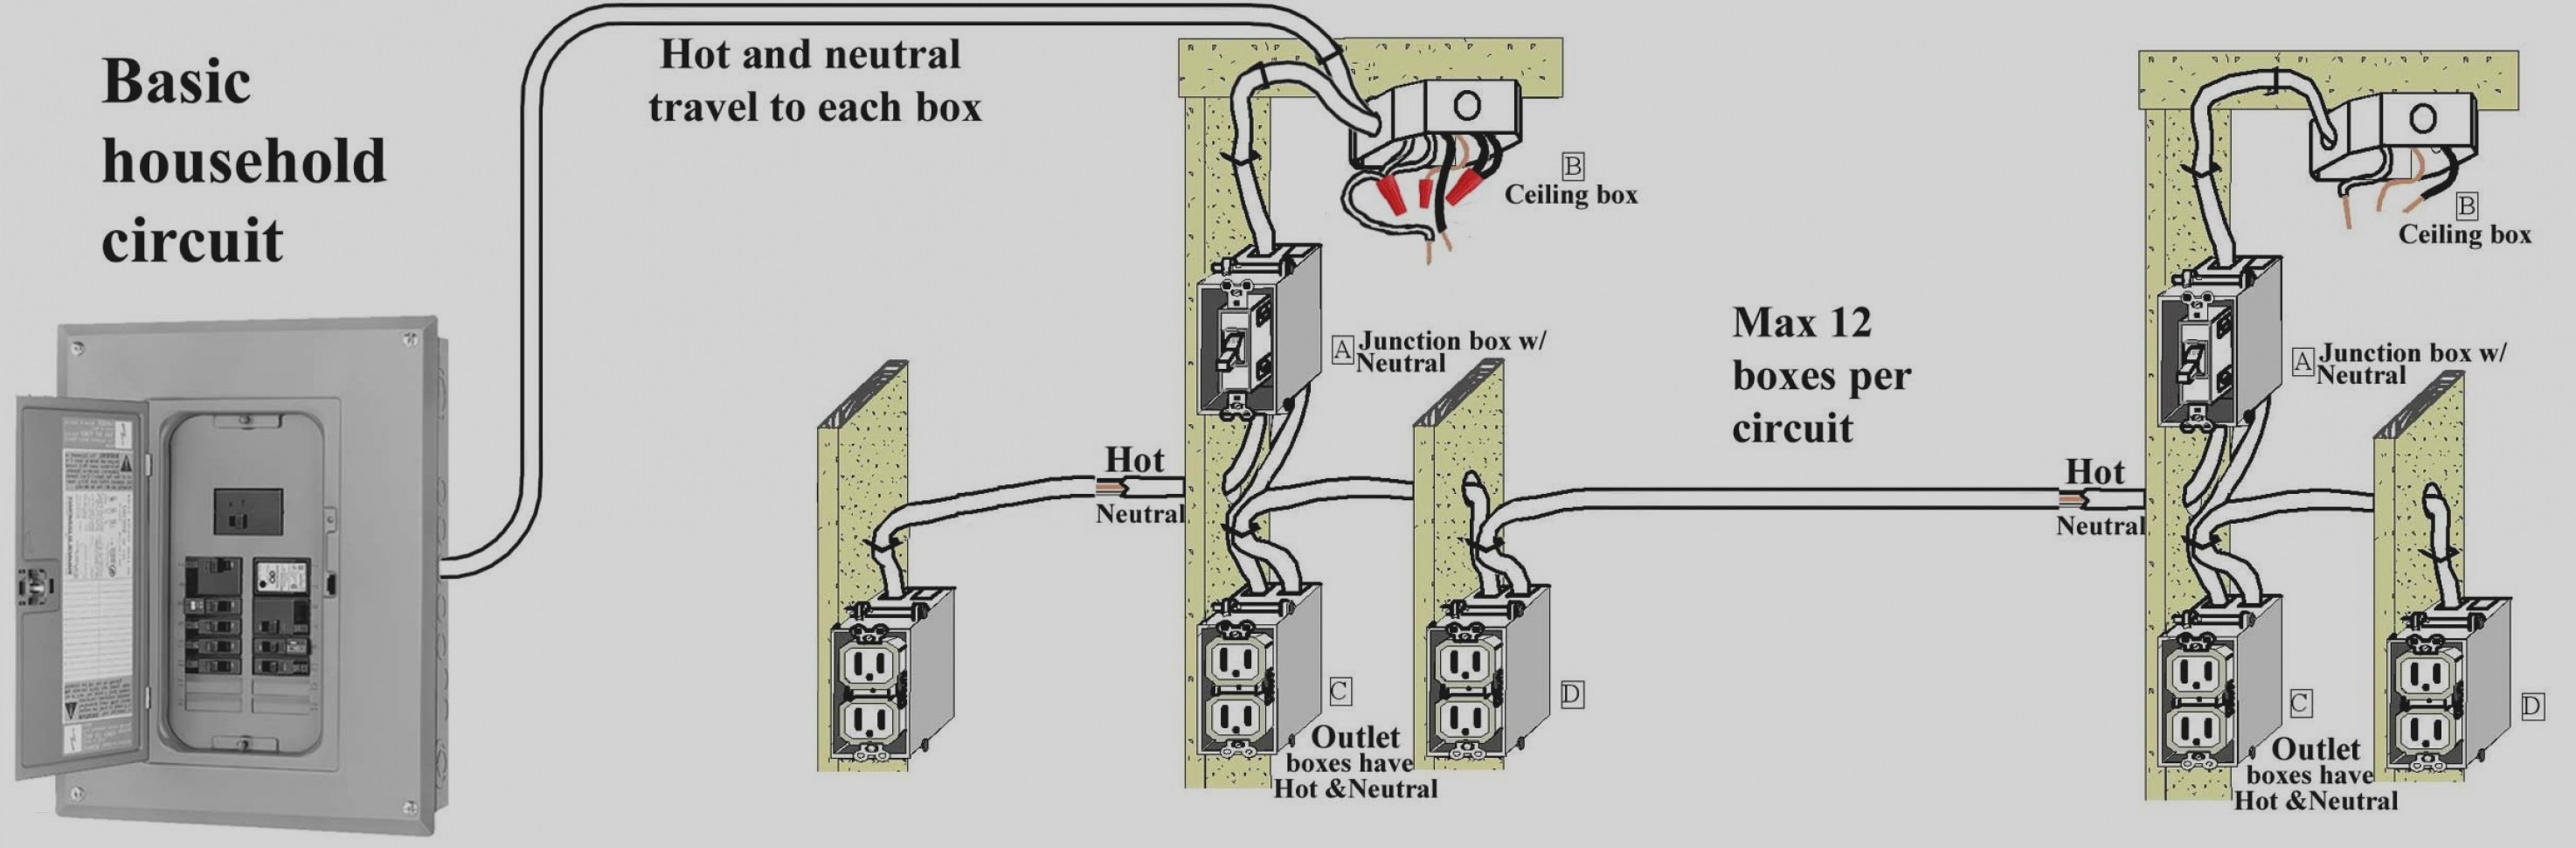 electrical home wiring basics pdf mm 0109  wiring diagrams for houses pdf  mm 0109  wiring diagrams for houses pdf